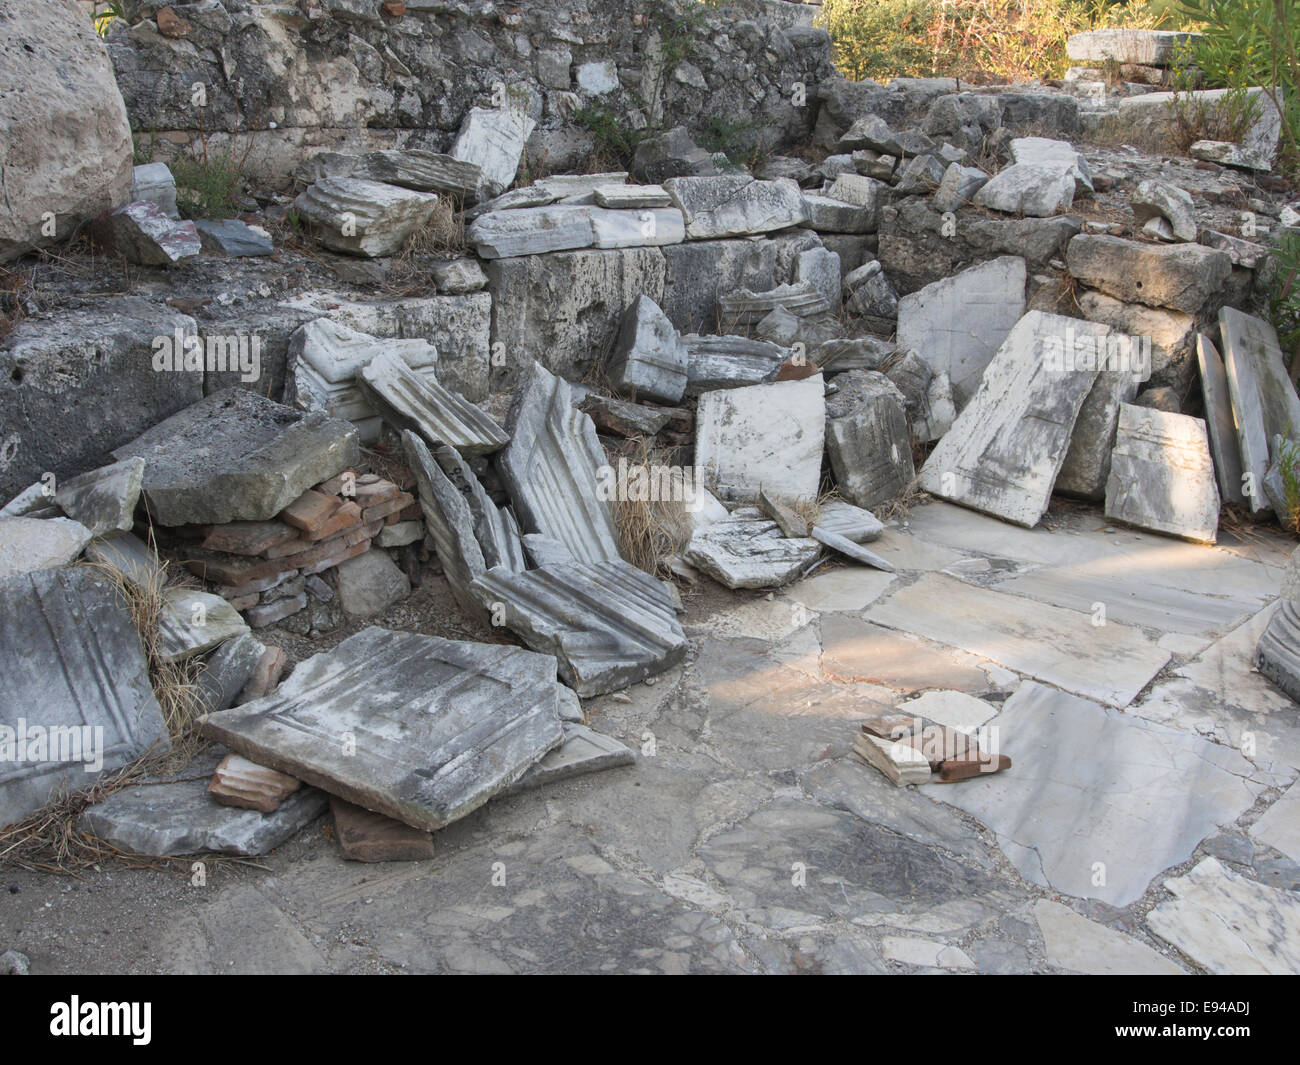 Ruins of the athletic area of Ancient Samos Greece, one of the many sights near Pythagorio, archaeological puzzle - Stock Image